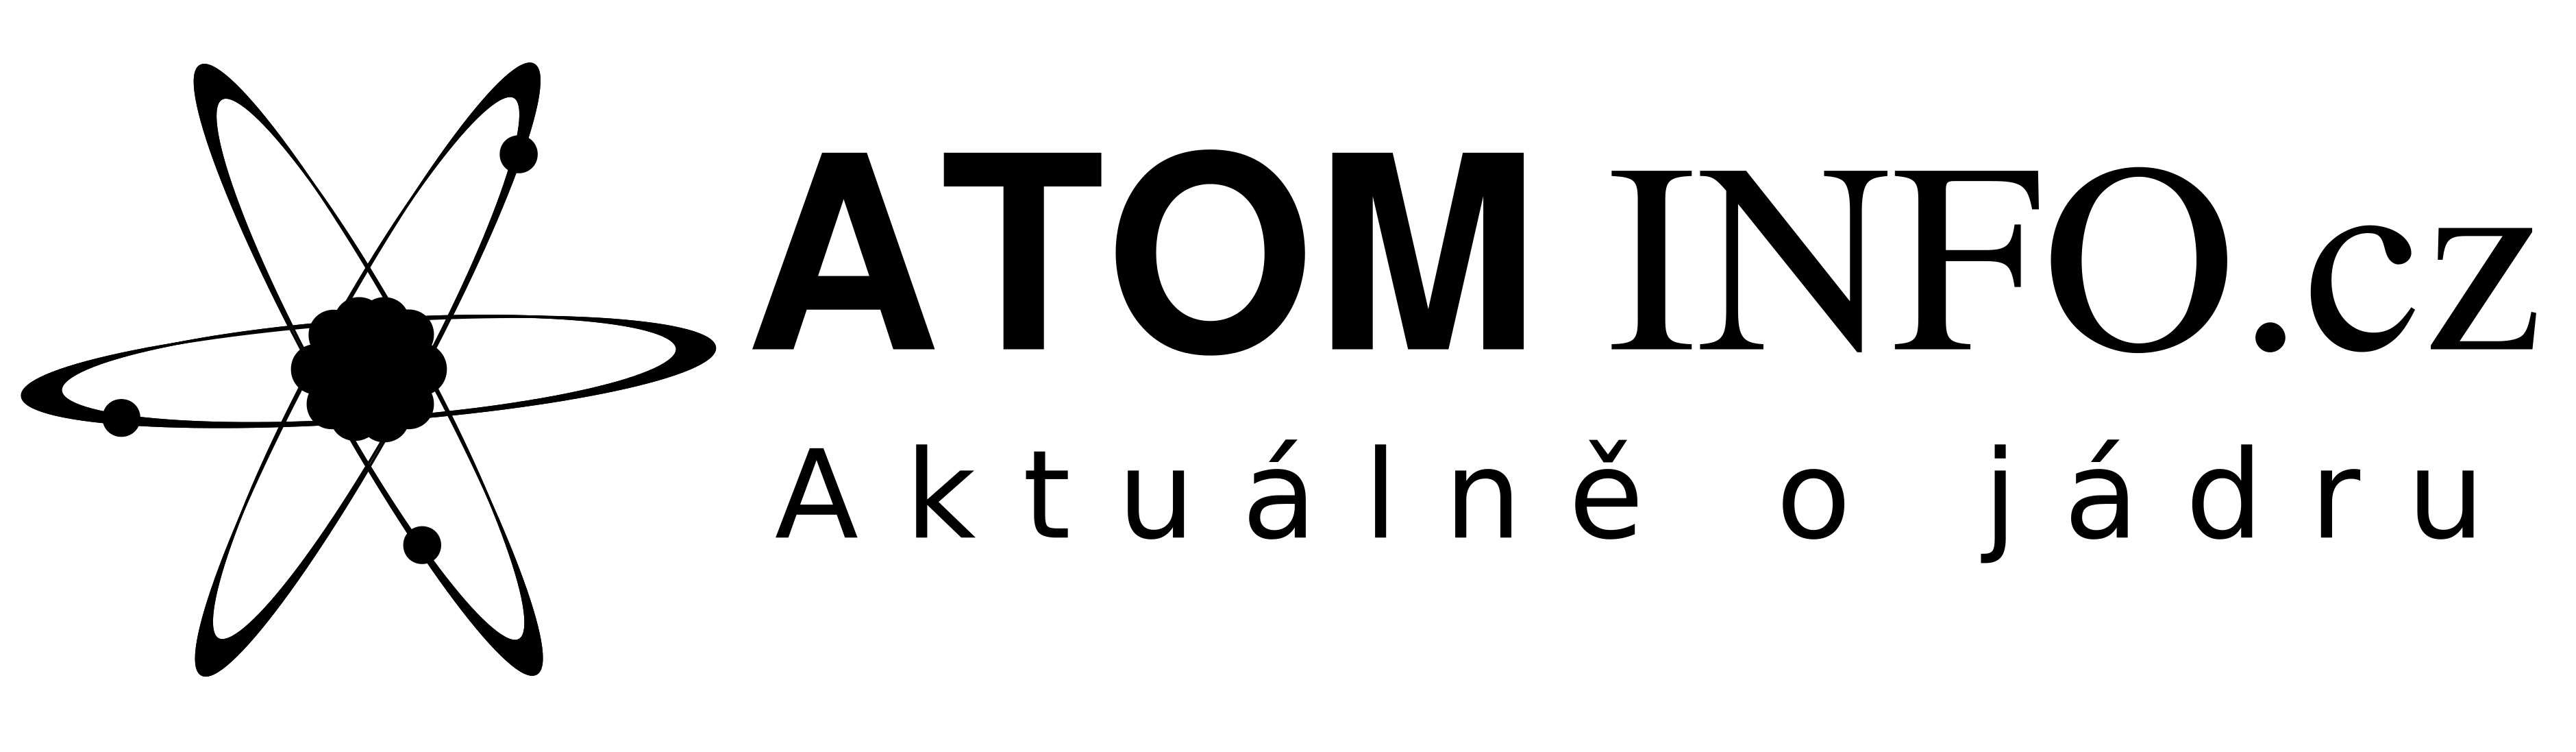 http://atominfo.cz/wp-content/uploads/2016/10/cropped-logo_atominfo_nove_300.png